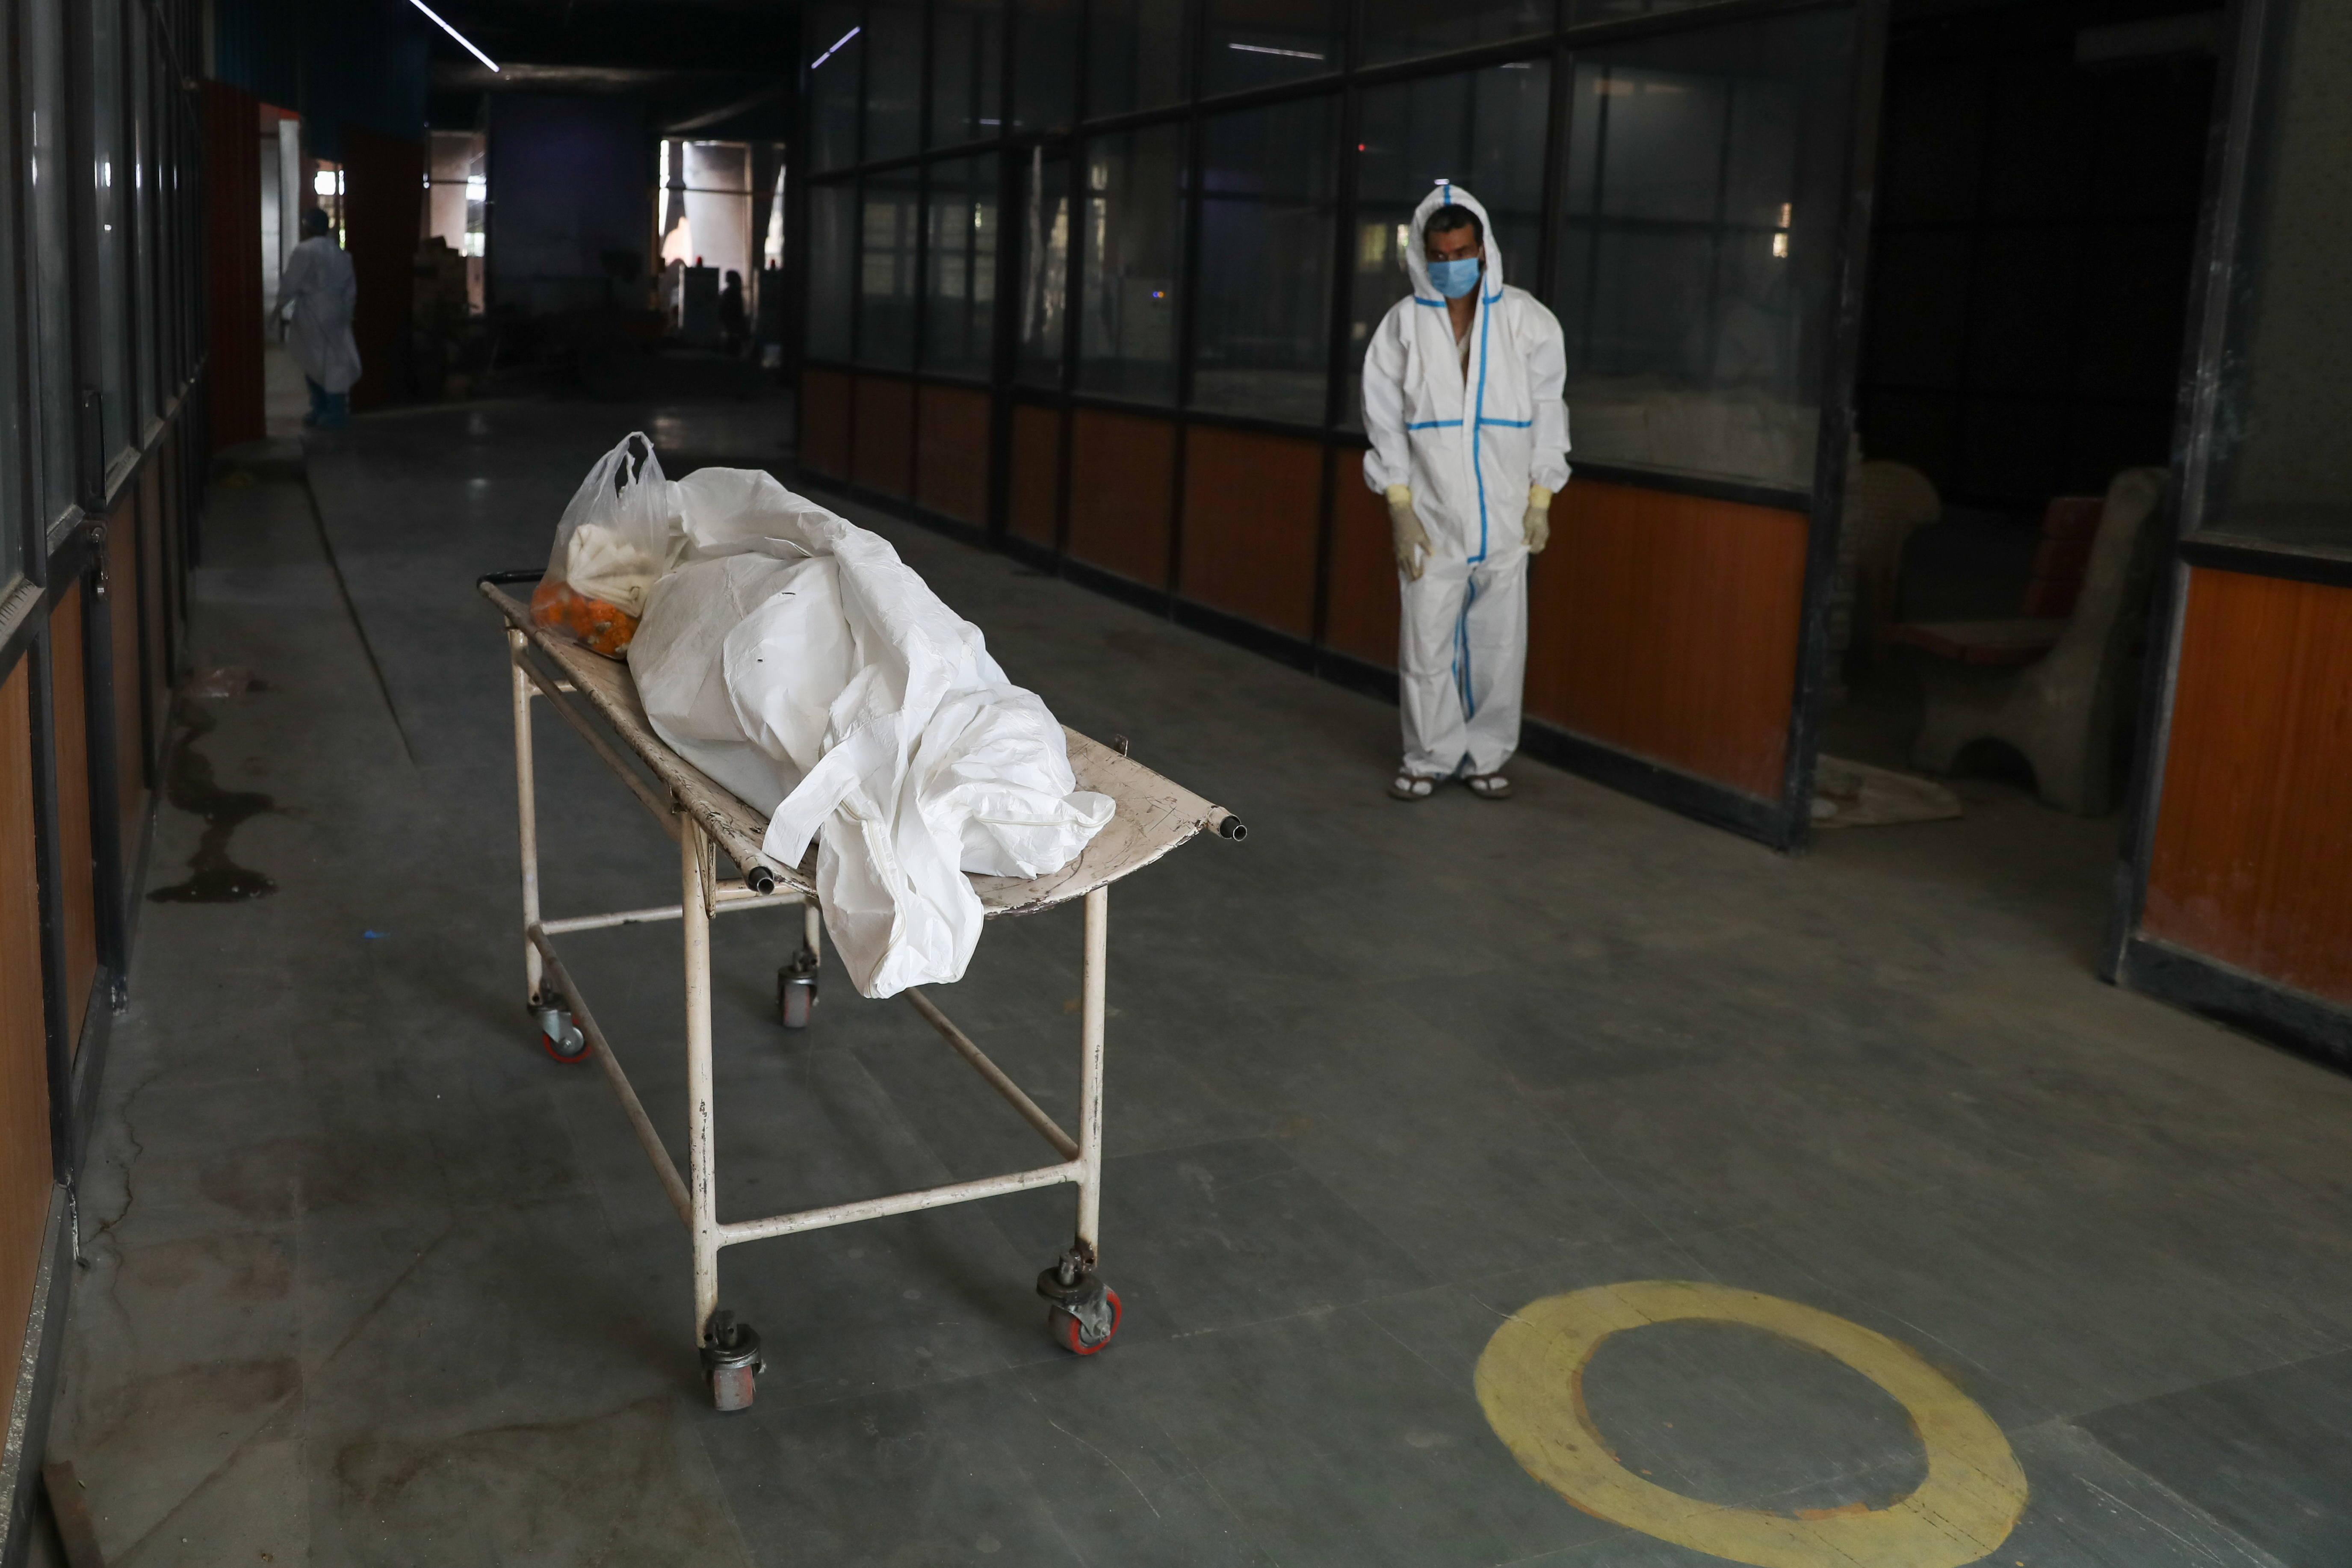 A man wearing personal protection equipment (PPE) waits next to the body of his mother, who died from the coronavirus disease (COVID-19), at a crematorium in New Delhi, India, April 9, 2021. REUTERS/Anushree Fadnavis